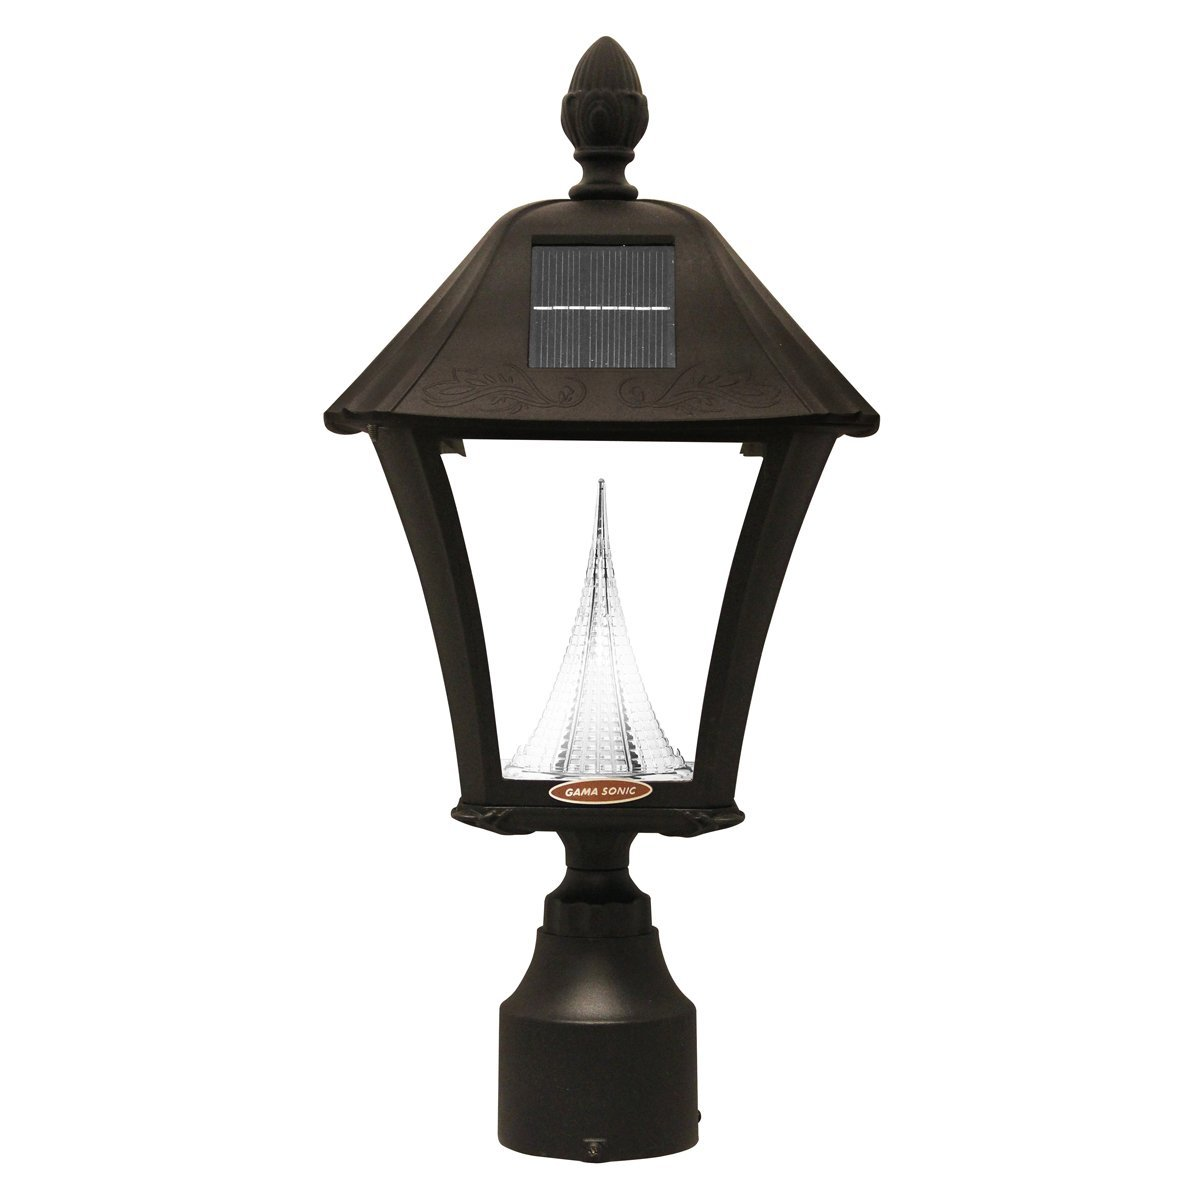 Gama Sonic Manufacturer-Refurbished Baytown Solar Outdoor Warm-White LED Light Fixture, 3-Inch Fitter for Post Mount, Black Finish